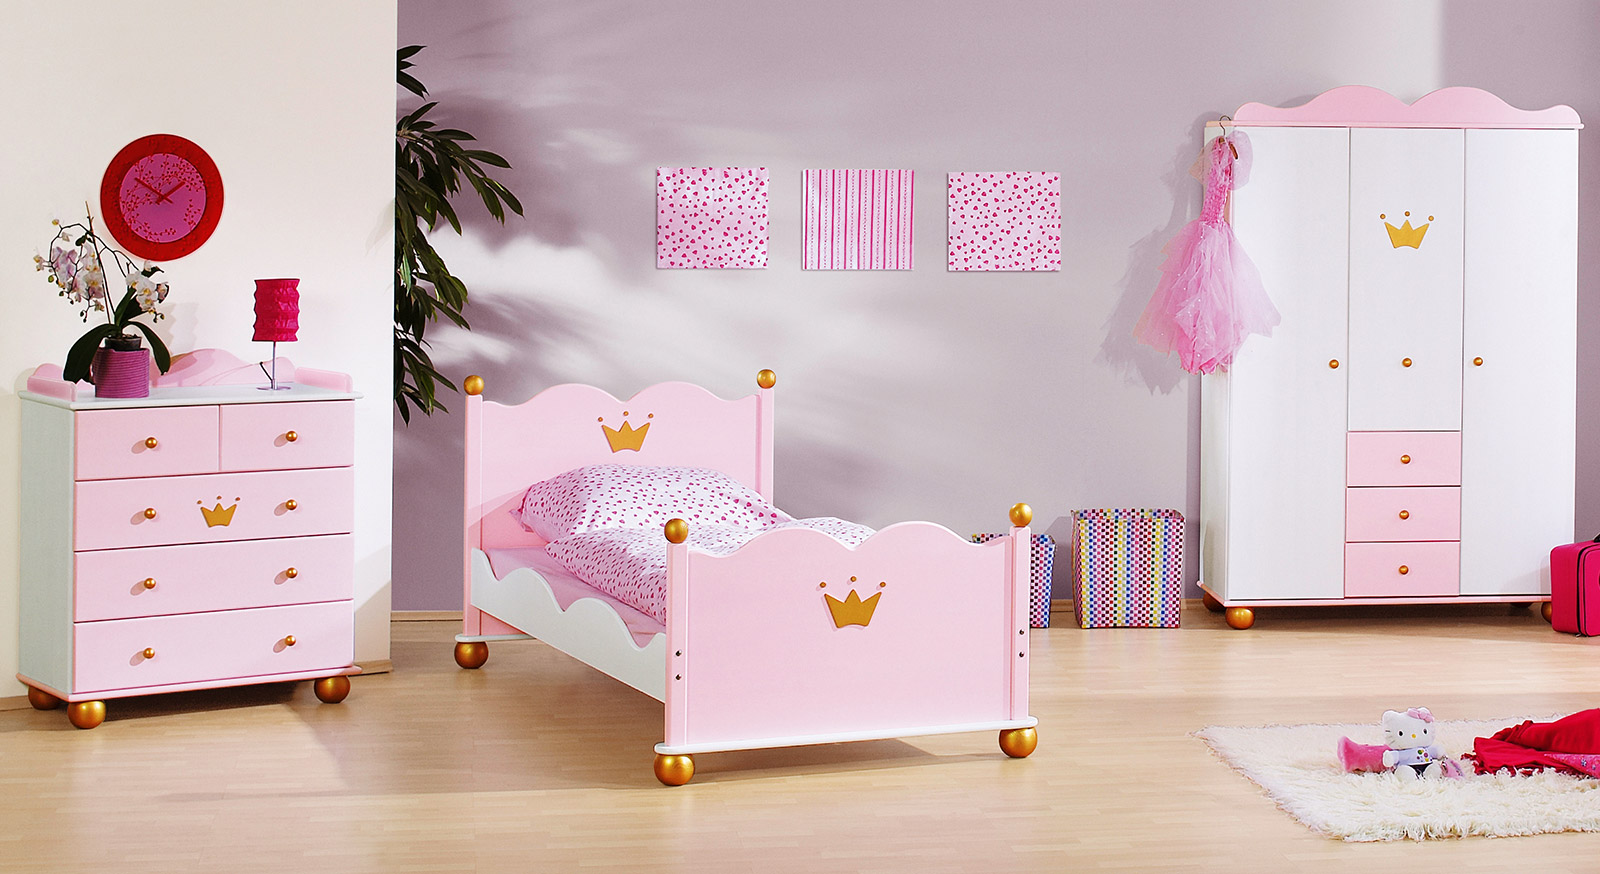 prinzessinnen kinderzimmer prinzessin karolin im online. Black Bedroom Furniture Sets. Home Design Ideas